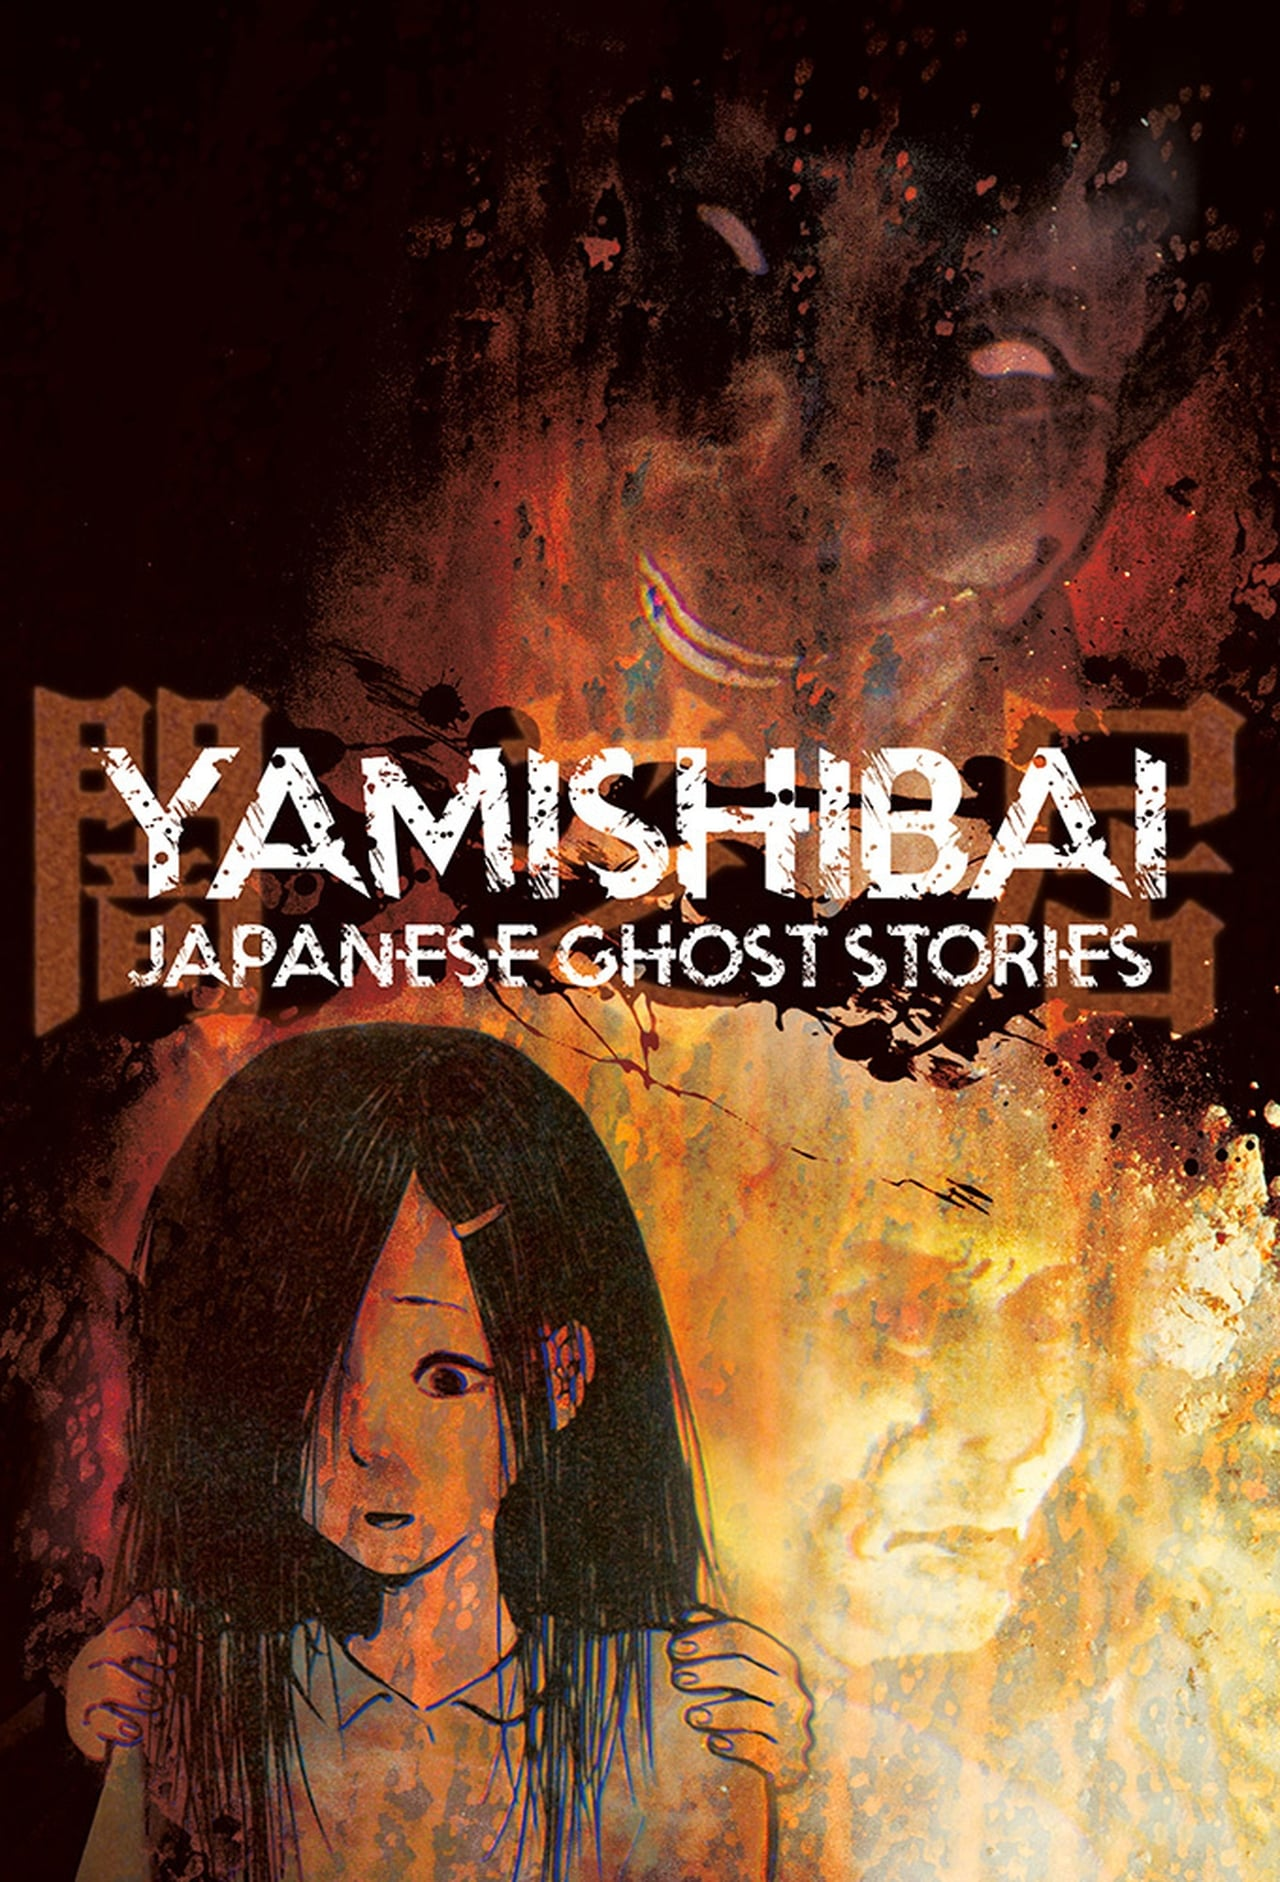 Putlocker Yamishibai: Japanese Ghost Stories Season 2 (2014)